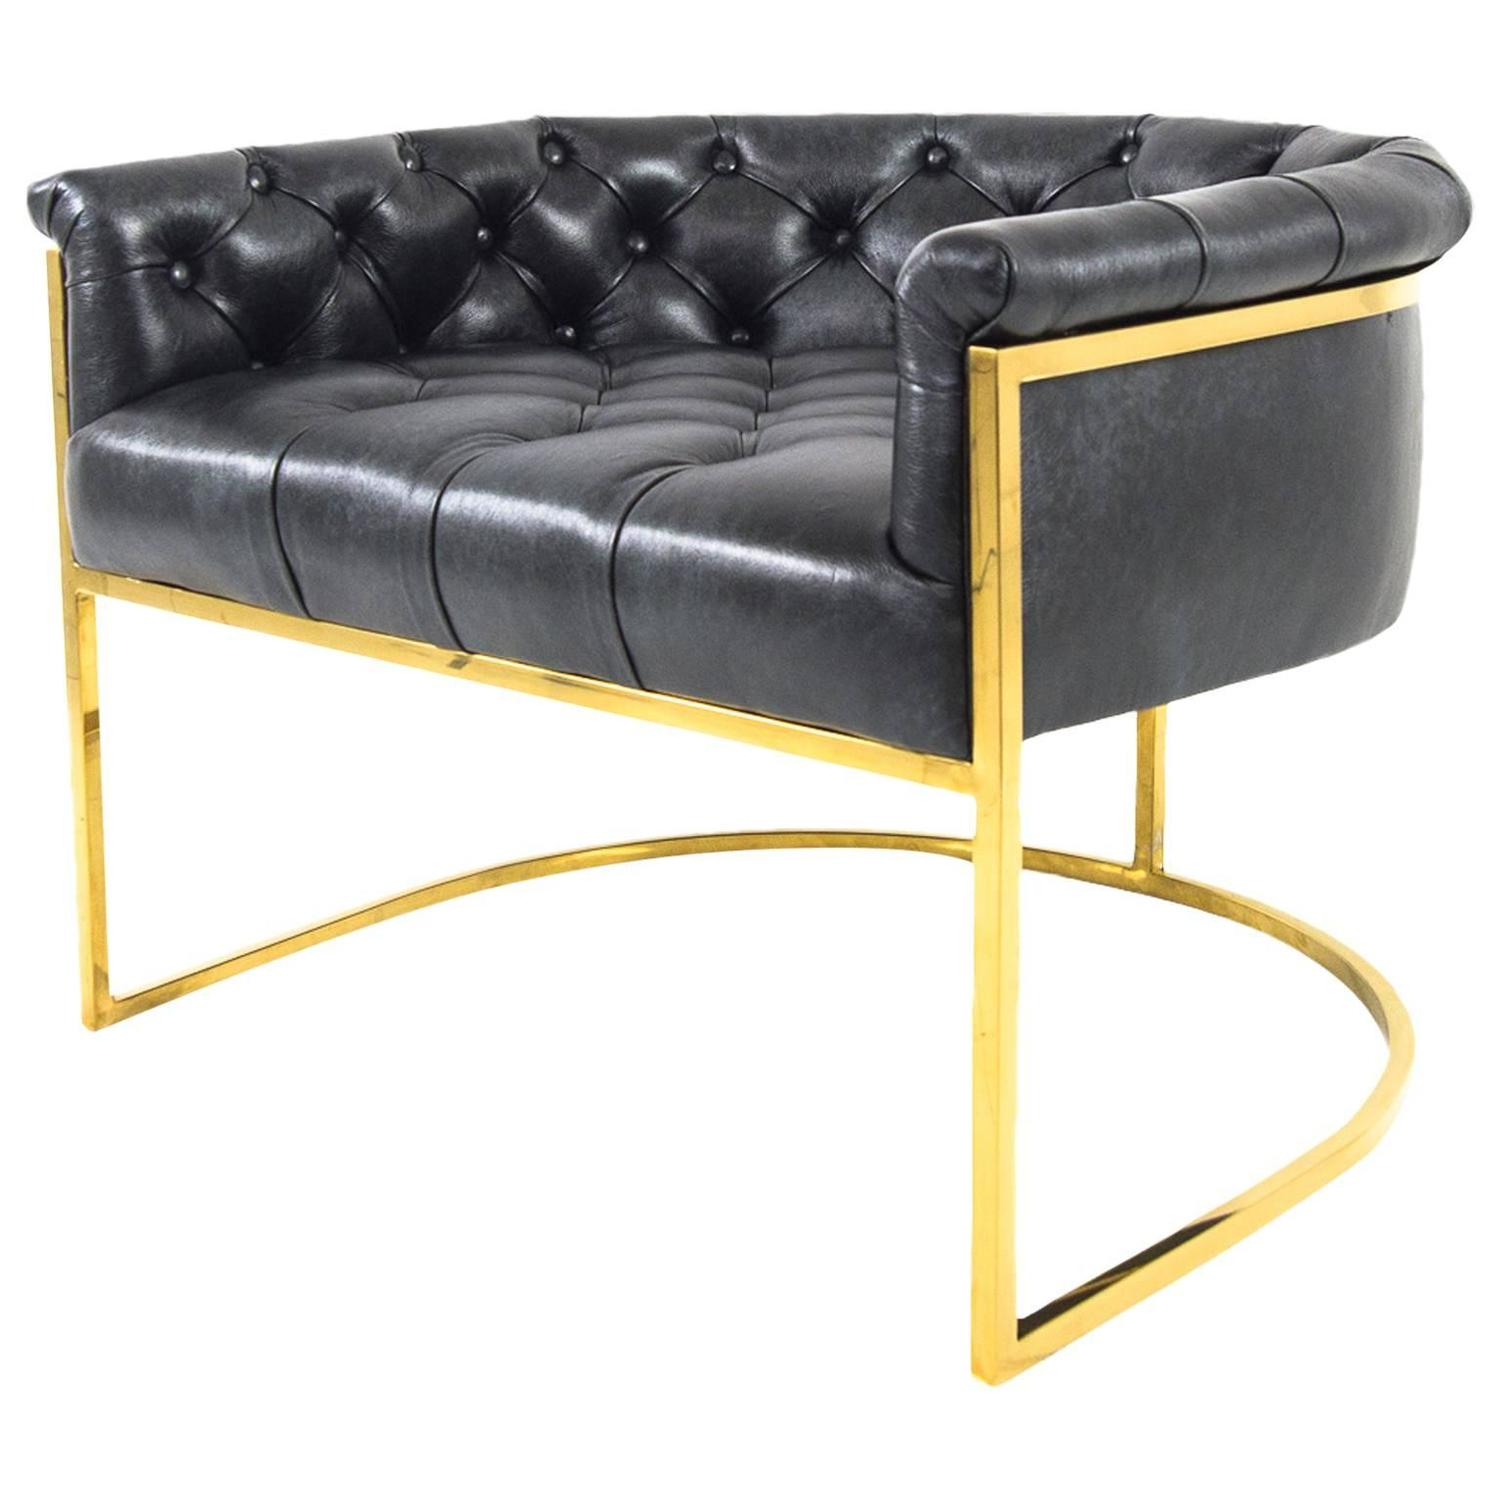 Lisbon Chair with Black Leather and Brass Frame For Sale at 1stdibs